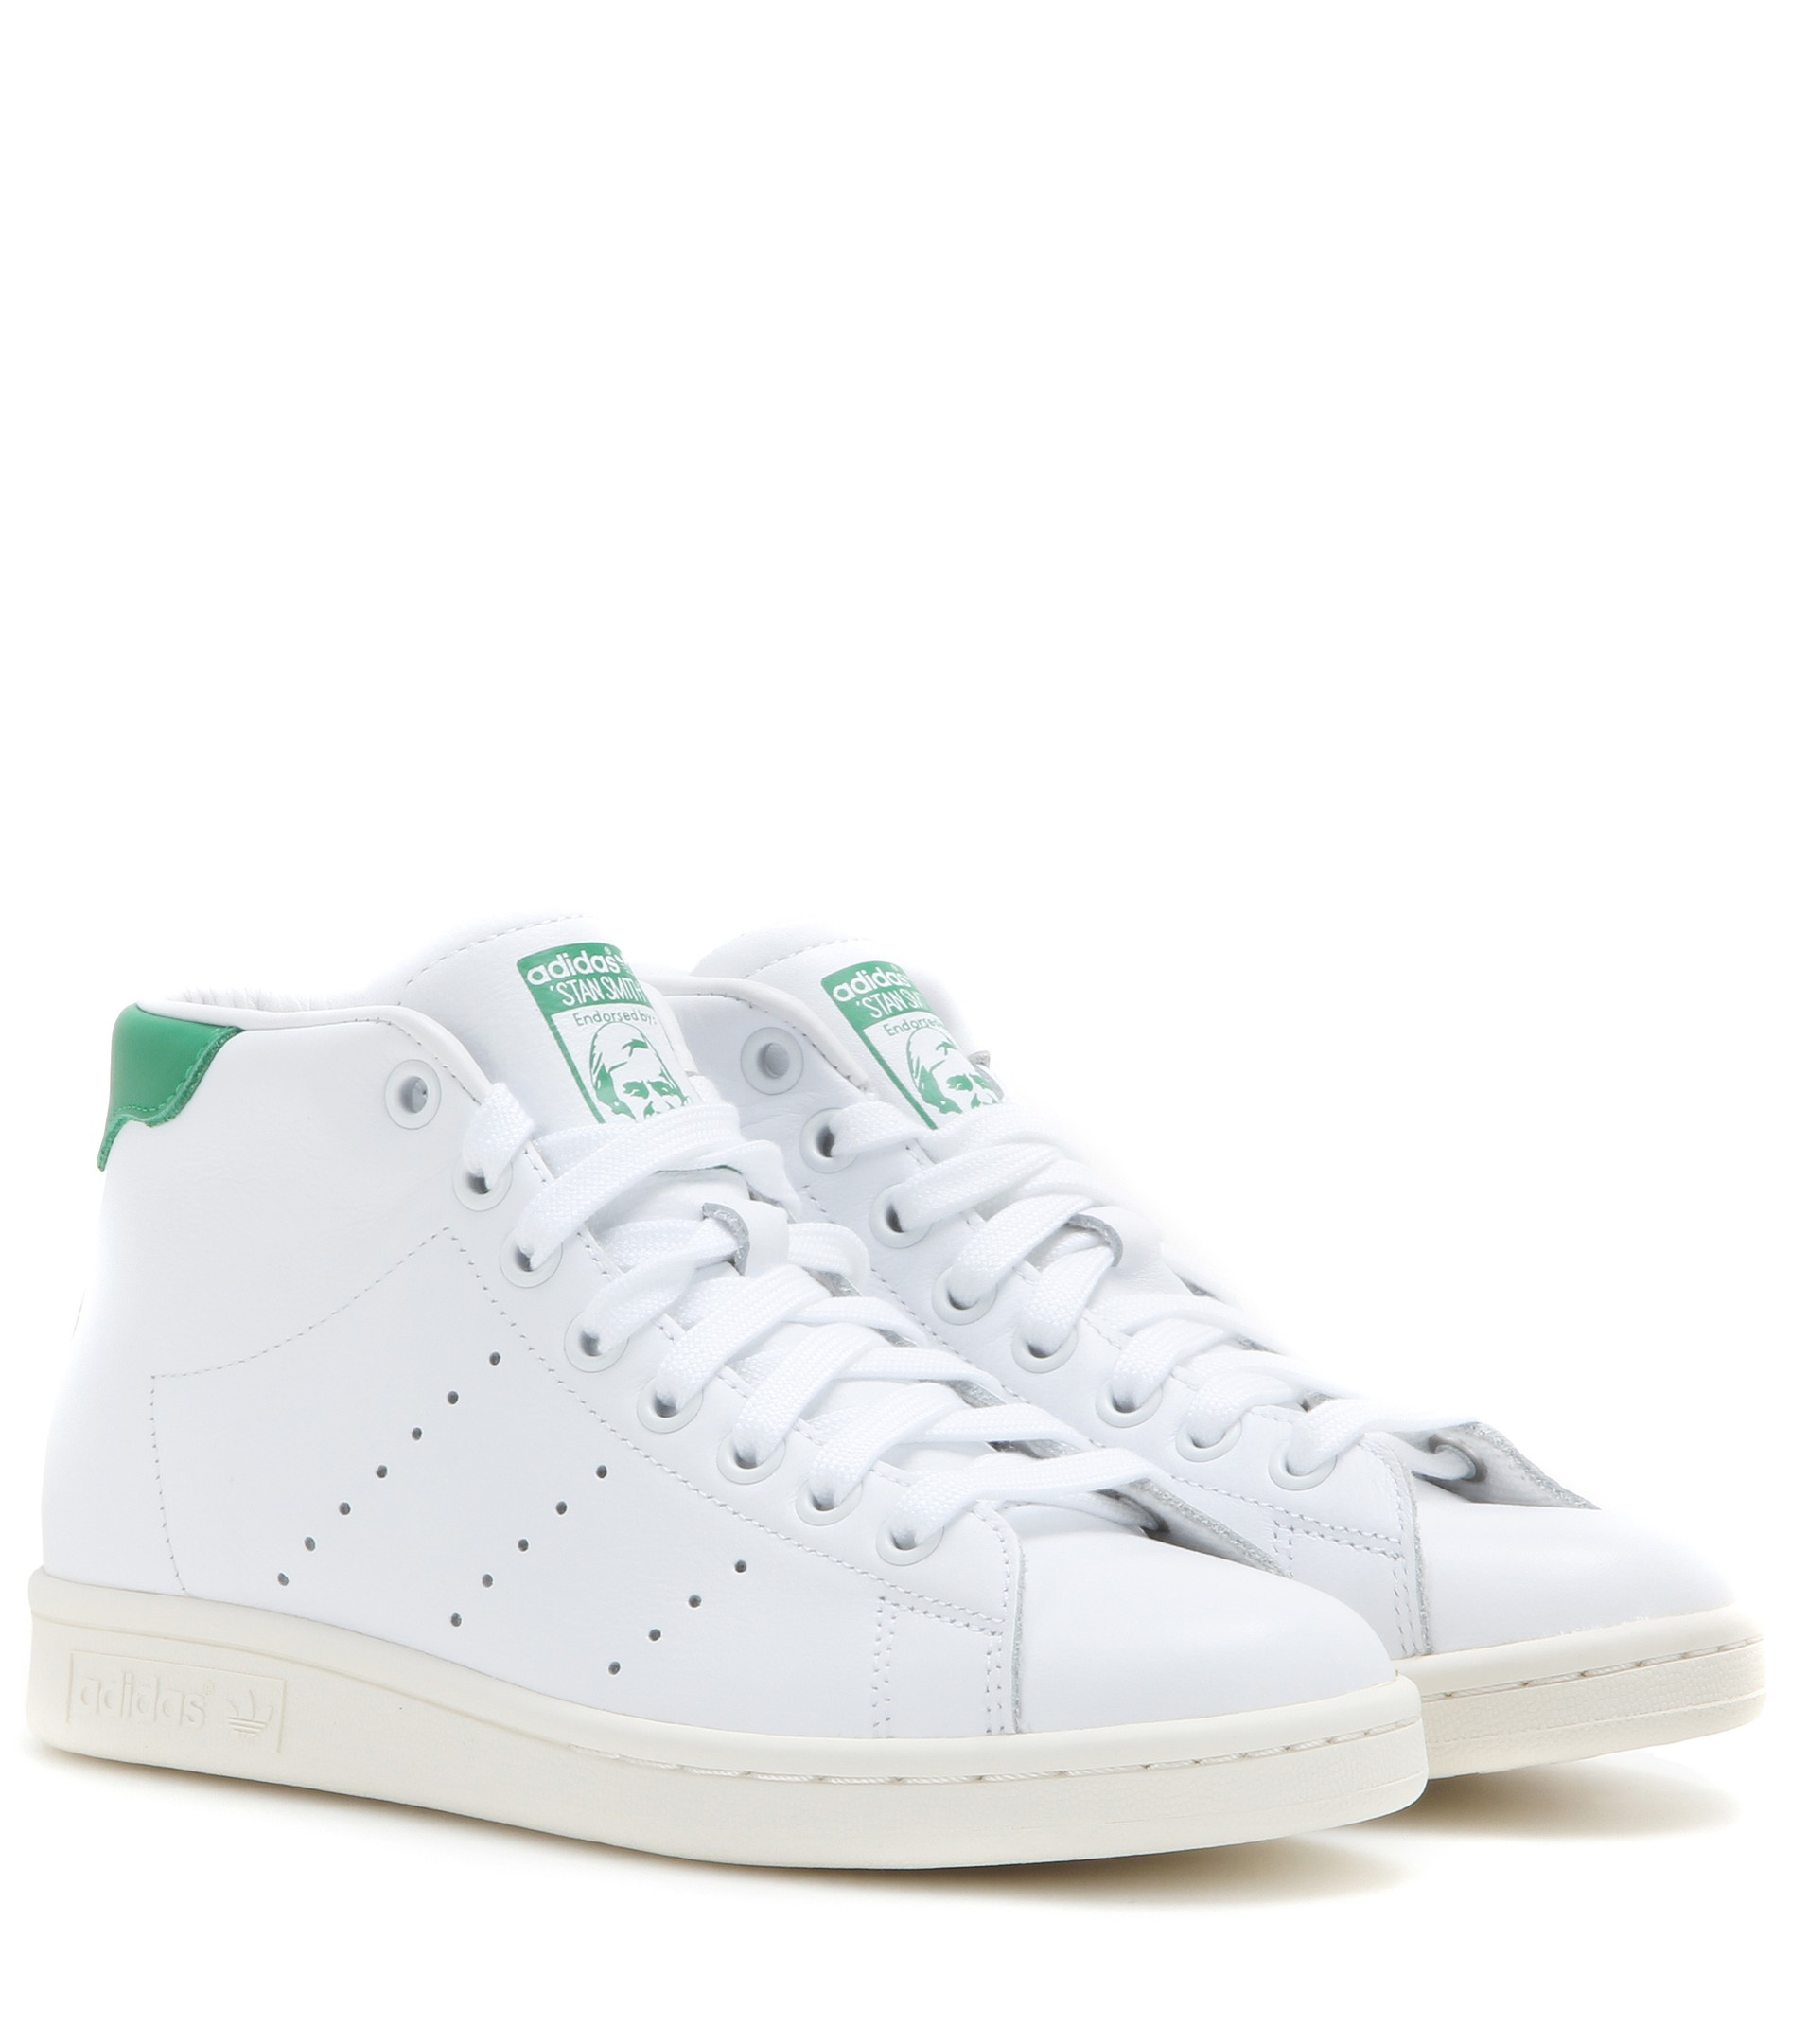 adidas stan smith mid leather high top sneakers in white lyst. Black Bedroom Furniture Sets. Home Design Ideas